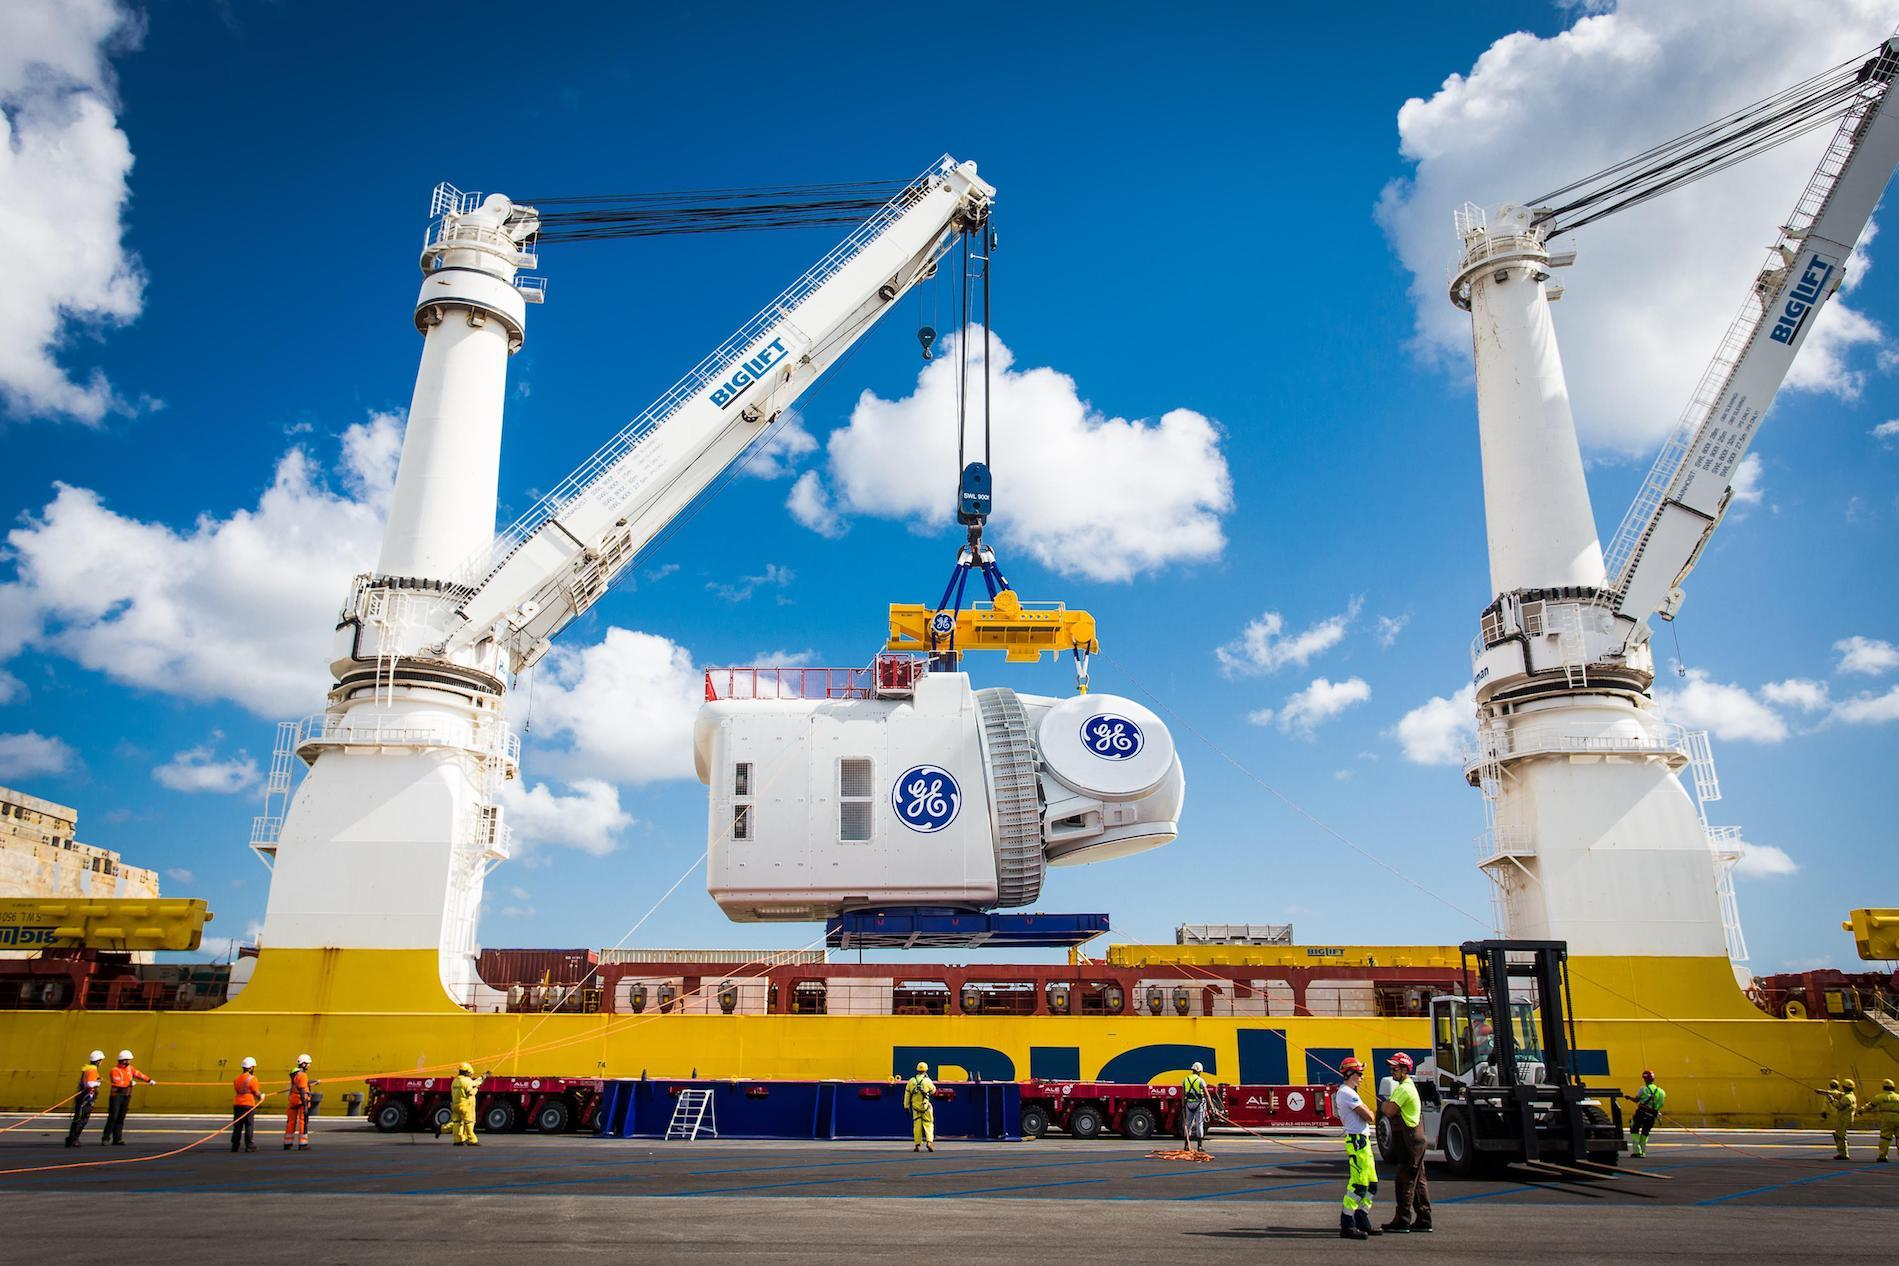 In August, Sogrebas, member of The Heavy Lift Group (THLG), provided stevedoring services to support the transport of the Haliade-X nacelle.